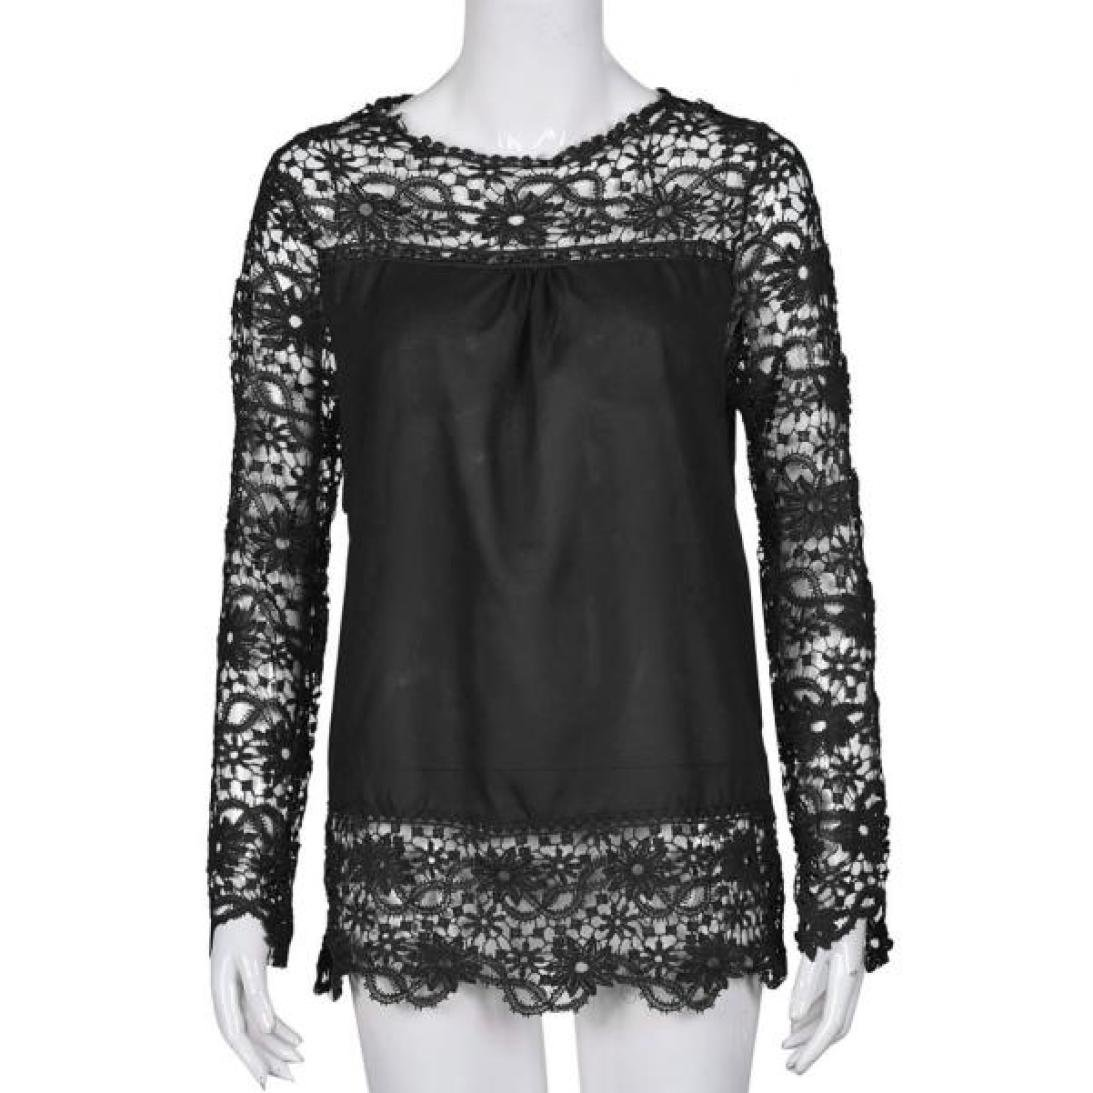 Women Plus Size Hollow Out Lace Splice Long Sleeve Shirt Casual Blouse Loose Top(Black,Medium) by iQKA (Image #3)